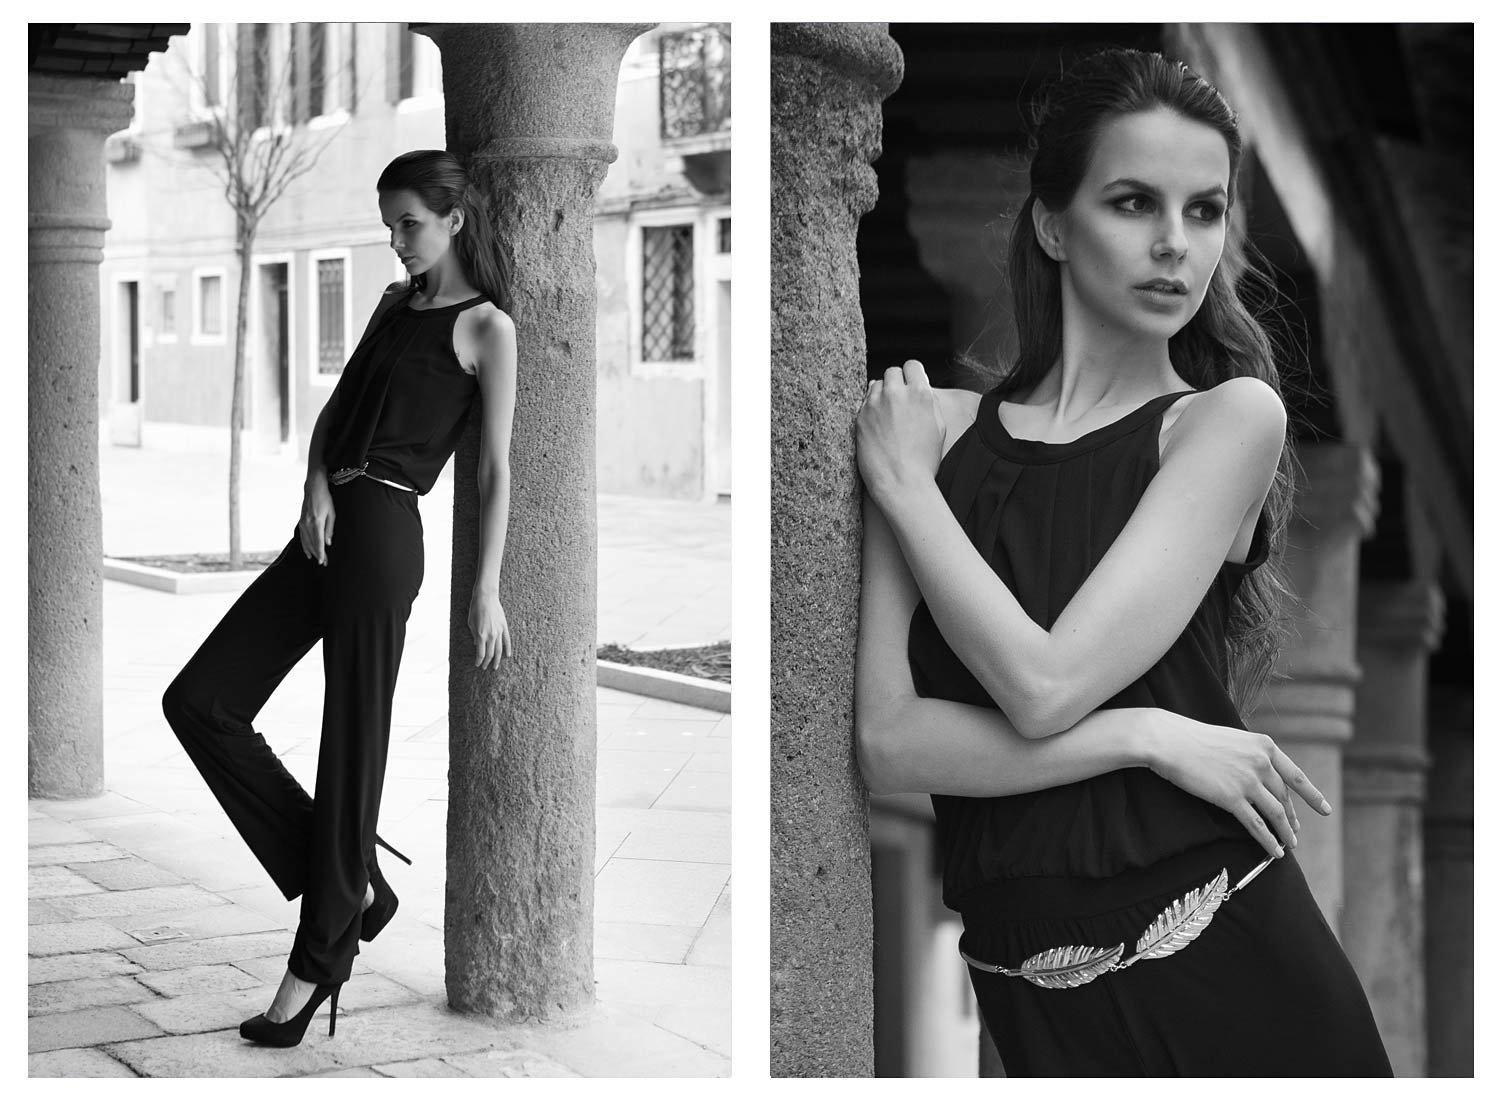 Catalogue Fashion shooting in Venice